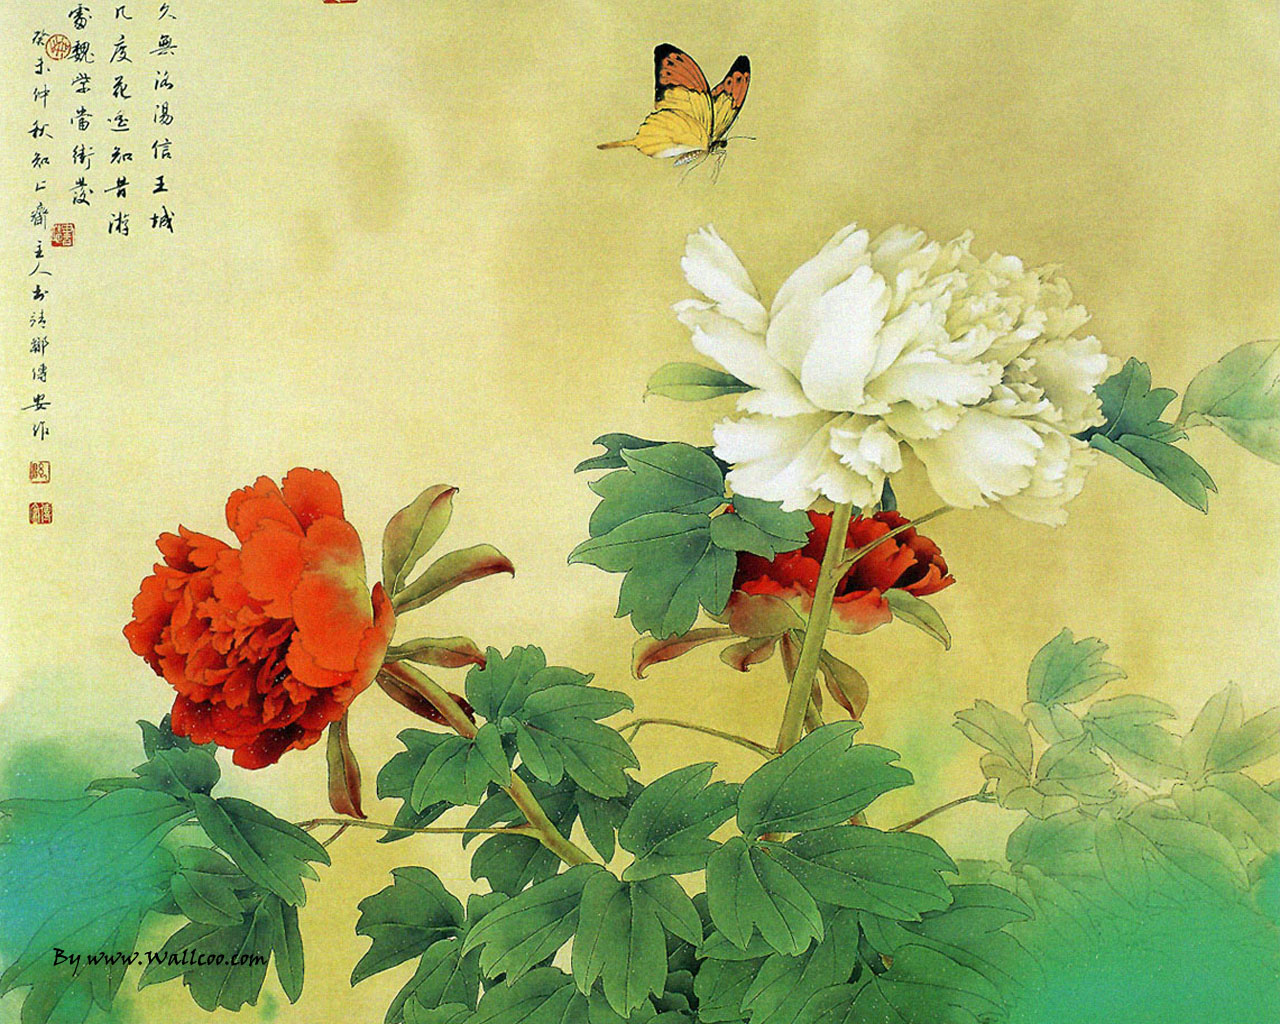 Chinese Paintings : Chinese Gongbi Paintings , Flower-and-Bird Painting by Zou Chuan An 1280*1024 NO.2 Wallpaper